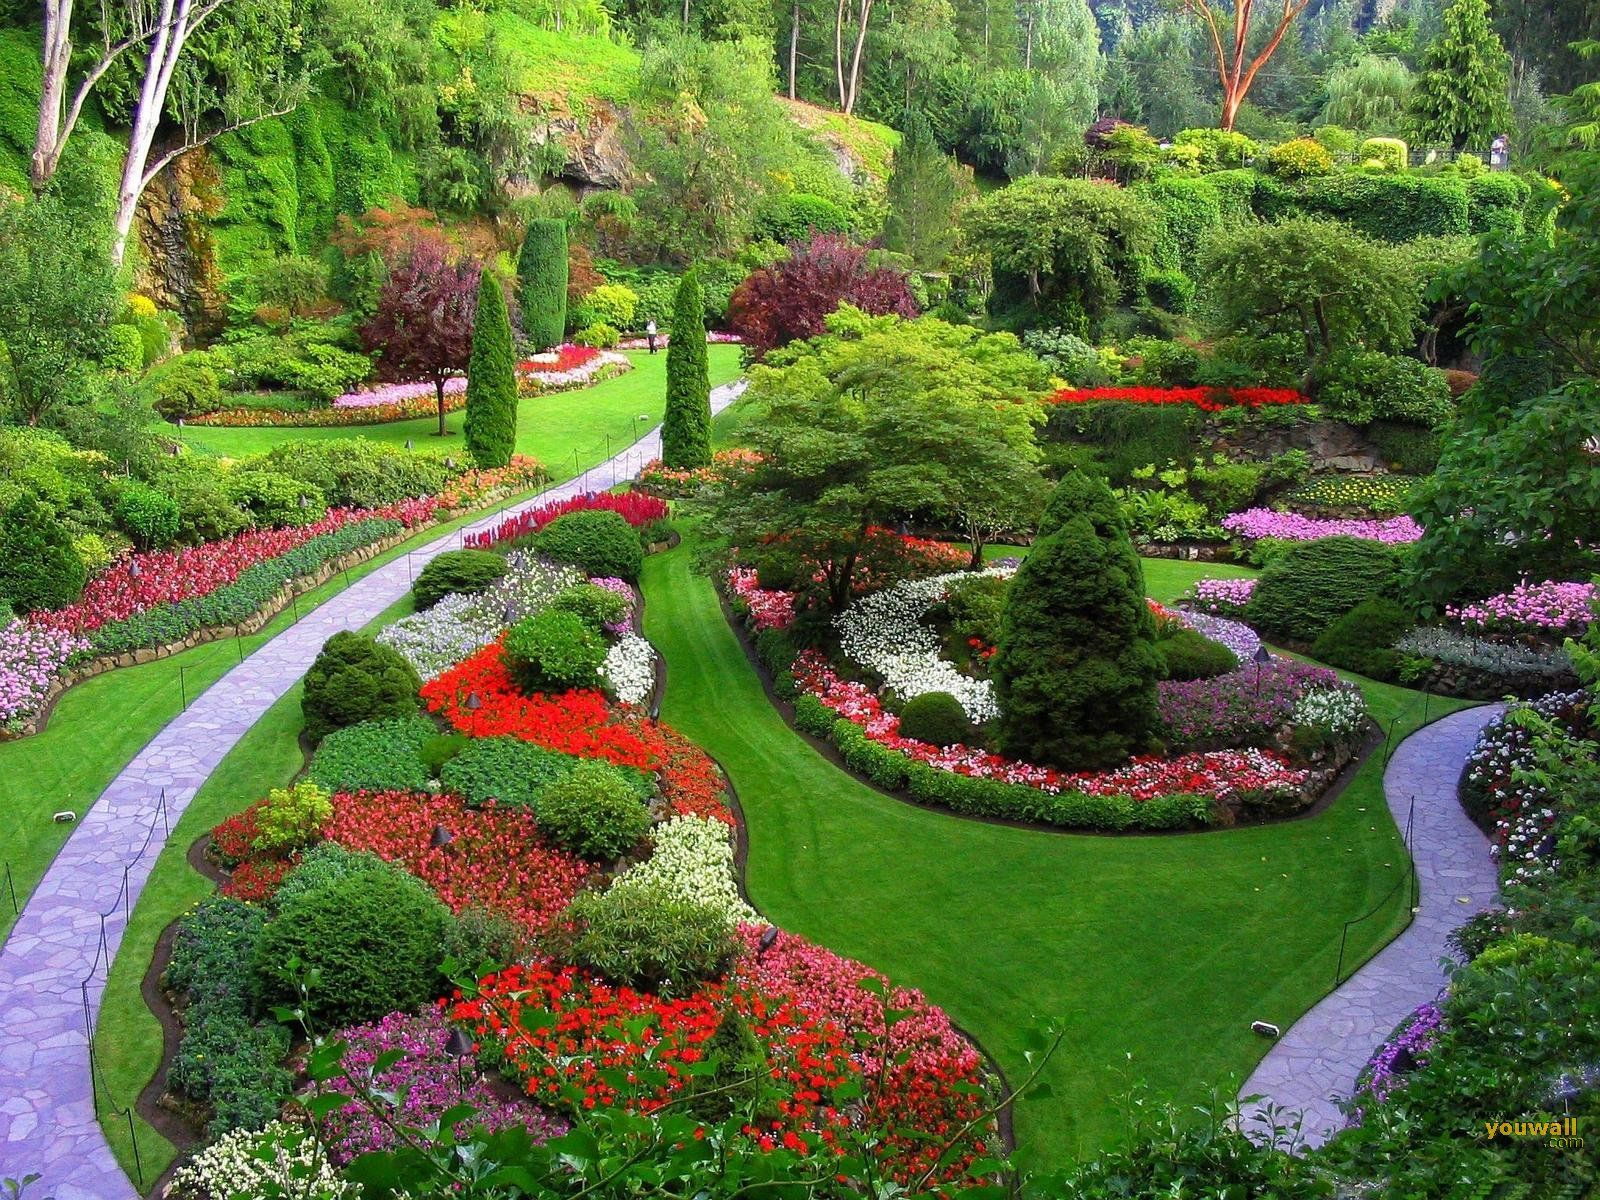 beautiful garden wallpaper viewing gallery beautiful garden wallpaper wallpapers hd for mobile free download desktop facebook of flowers nature bab